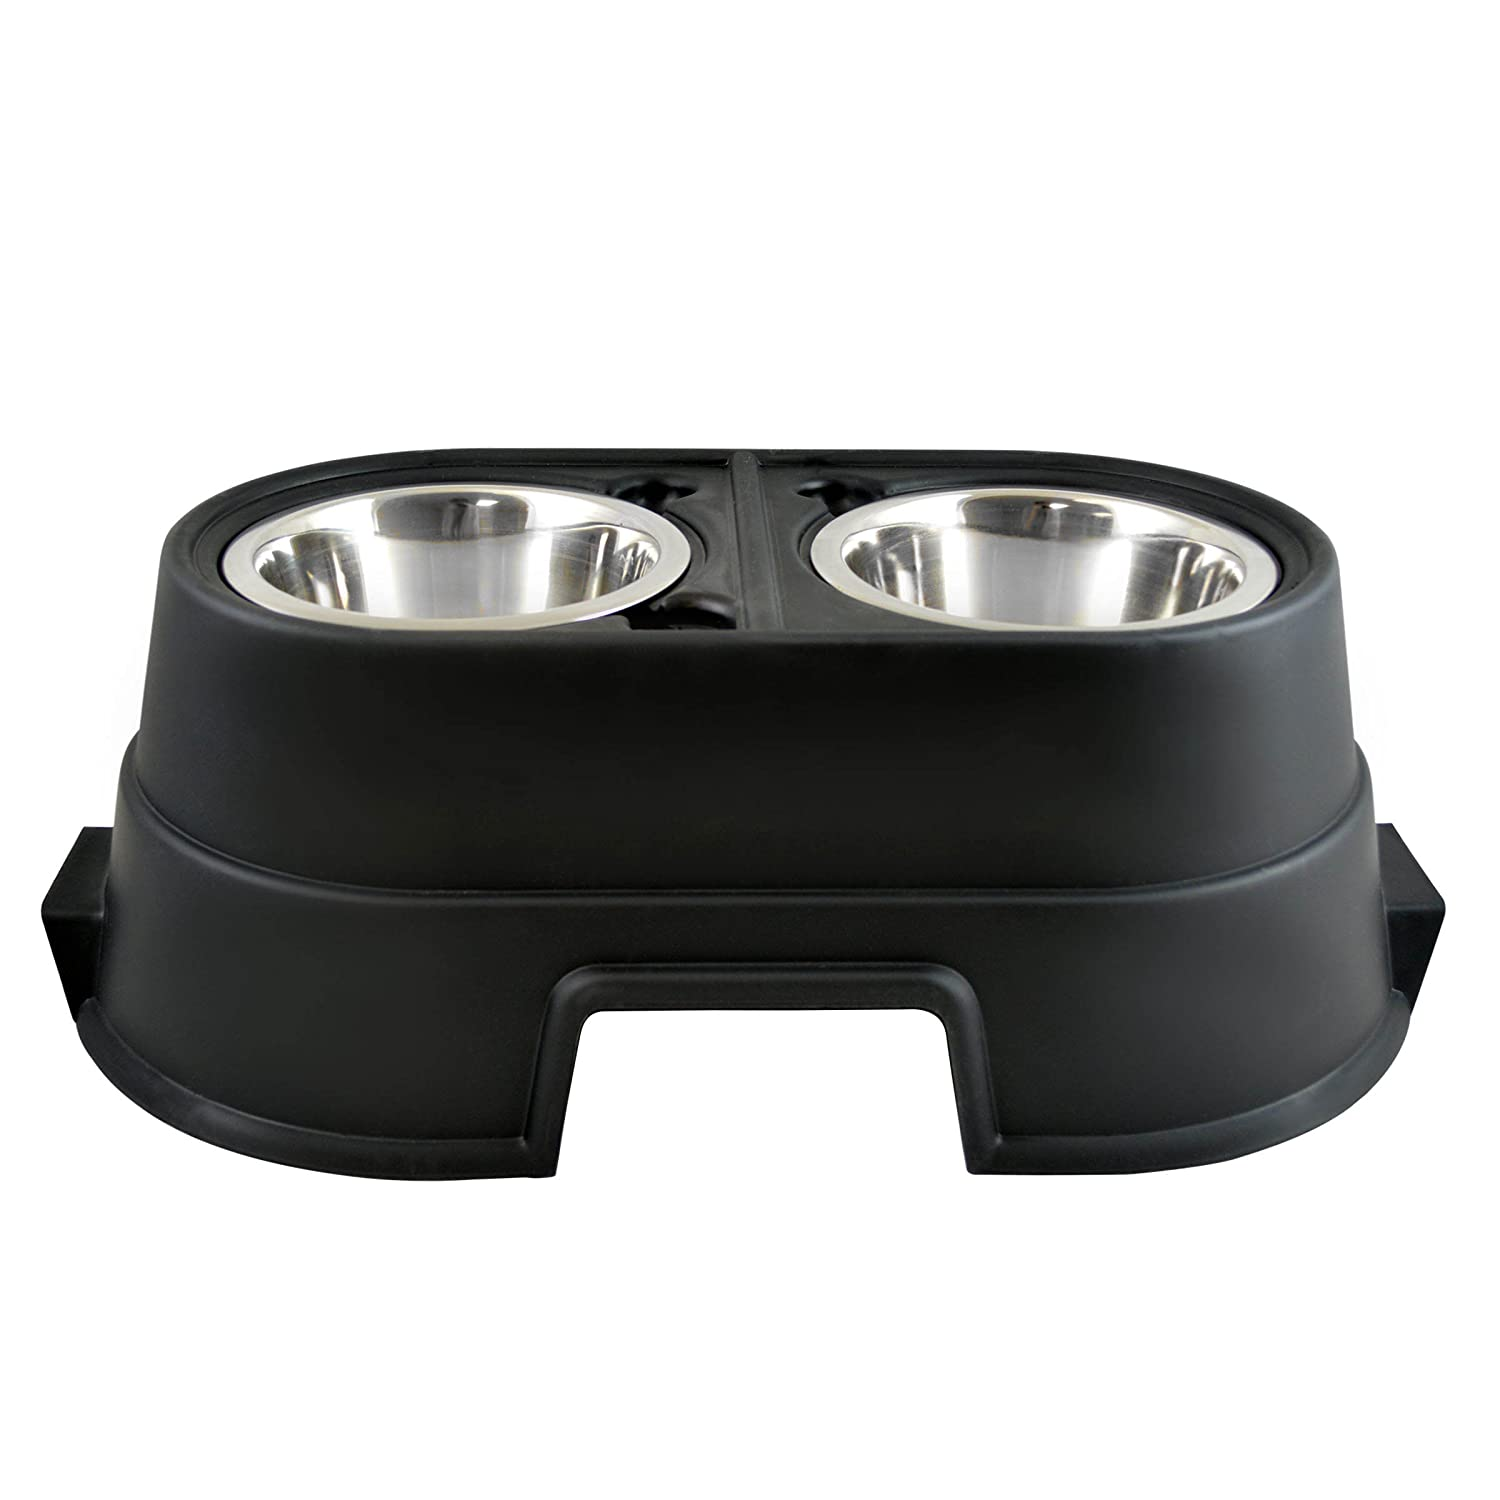 OurPets Healthy Pet Diner Elevated Feeder Black 8 inches